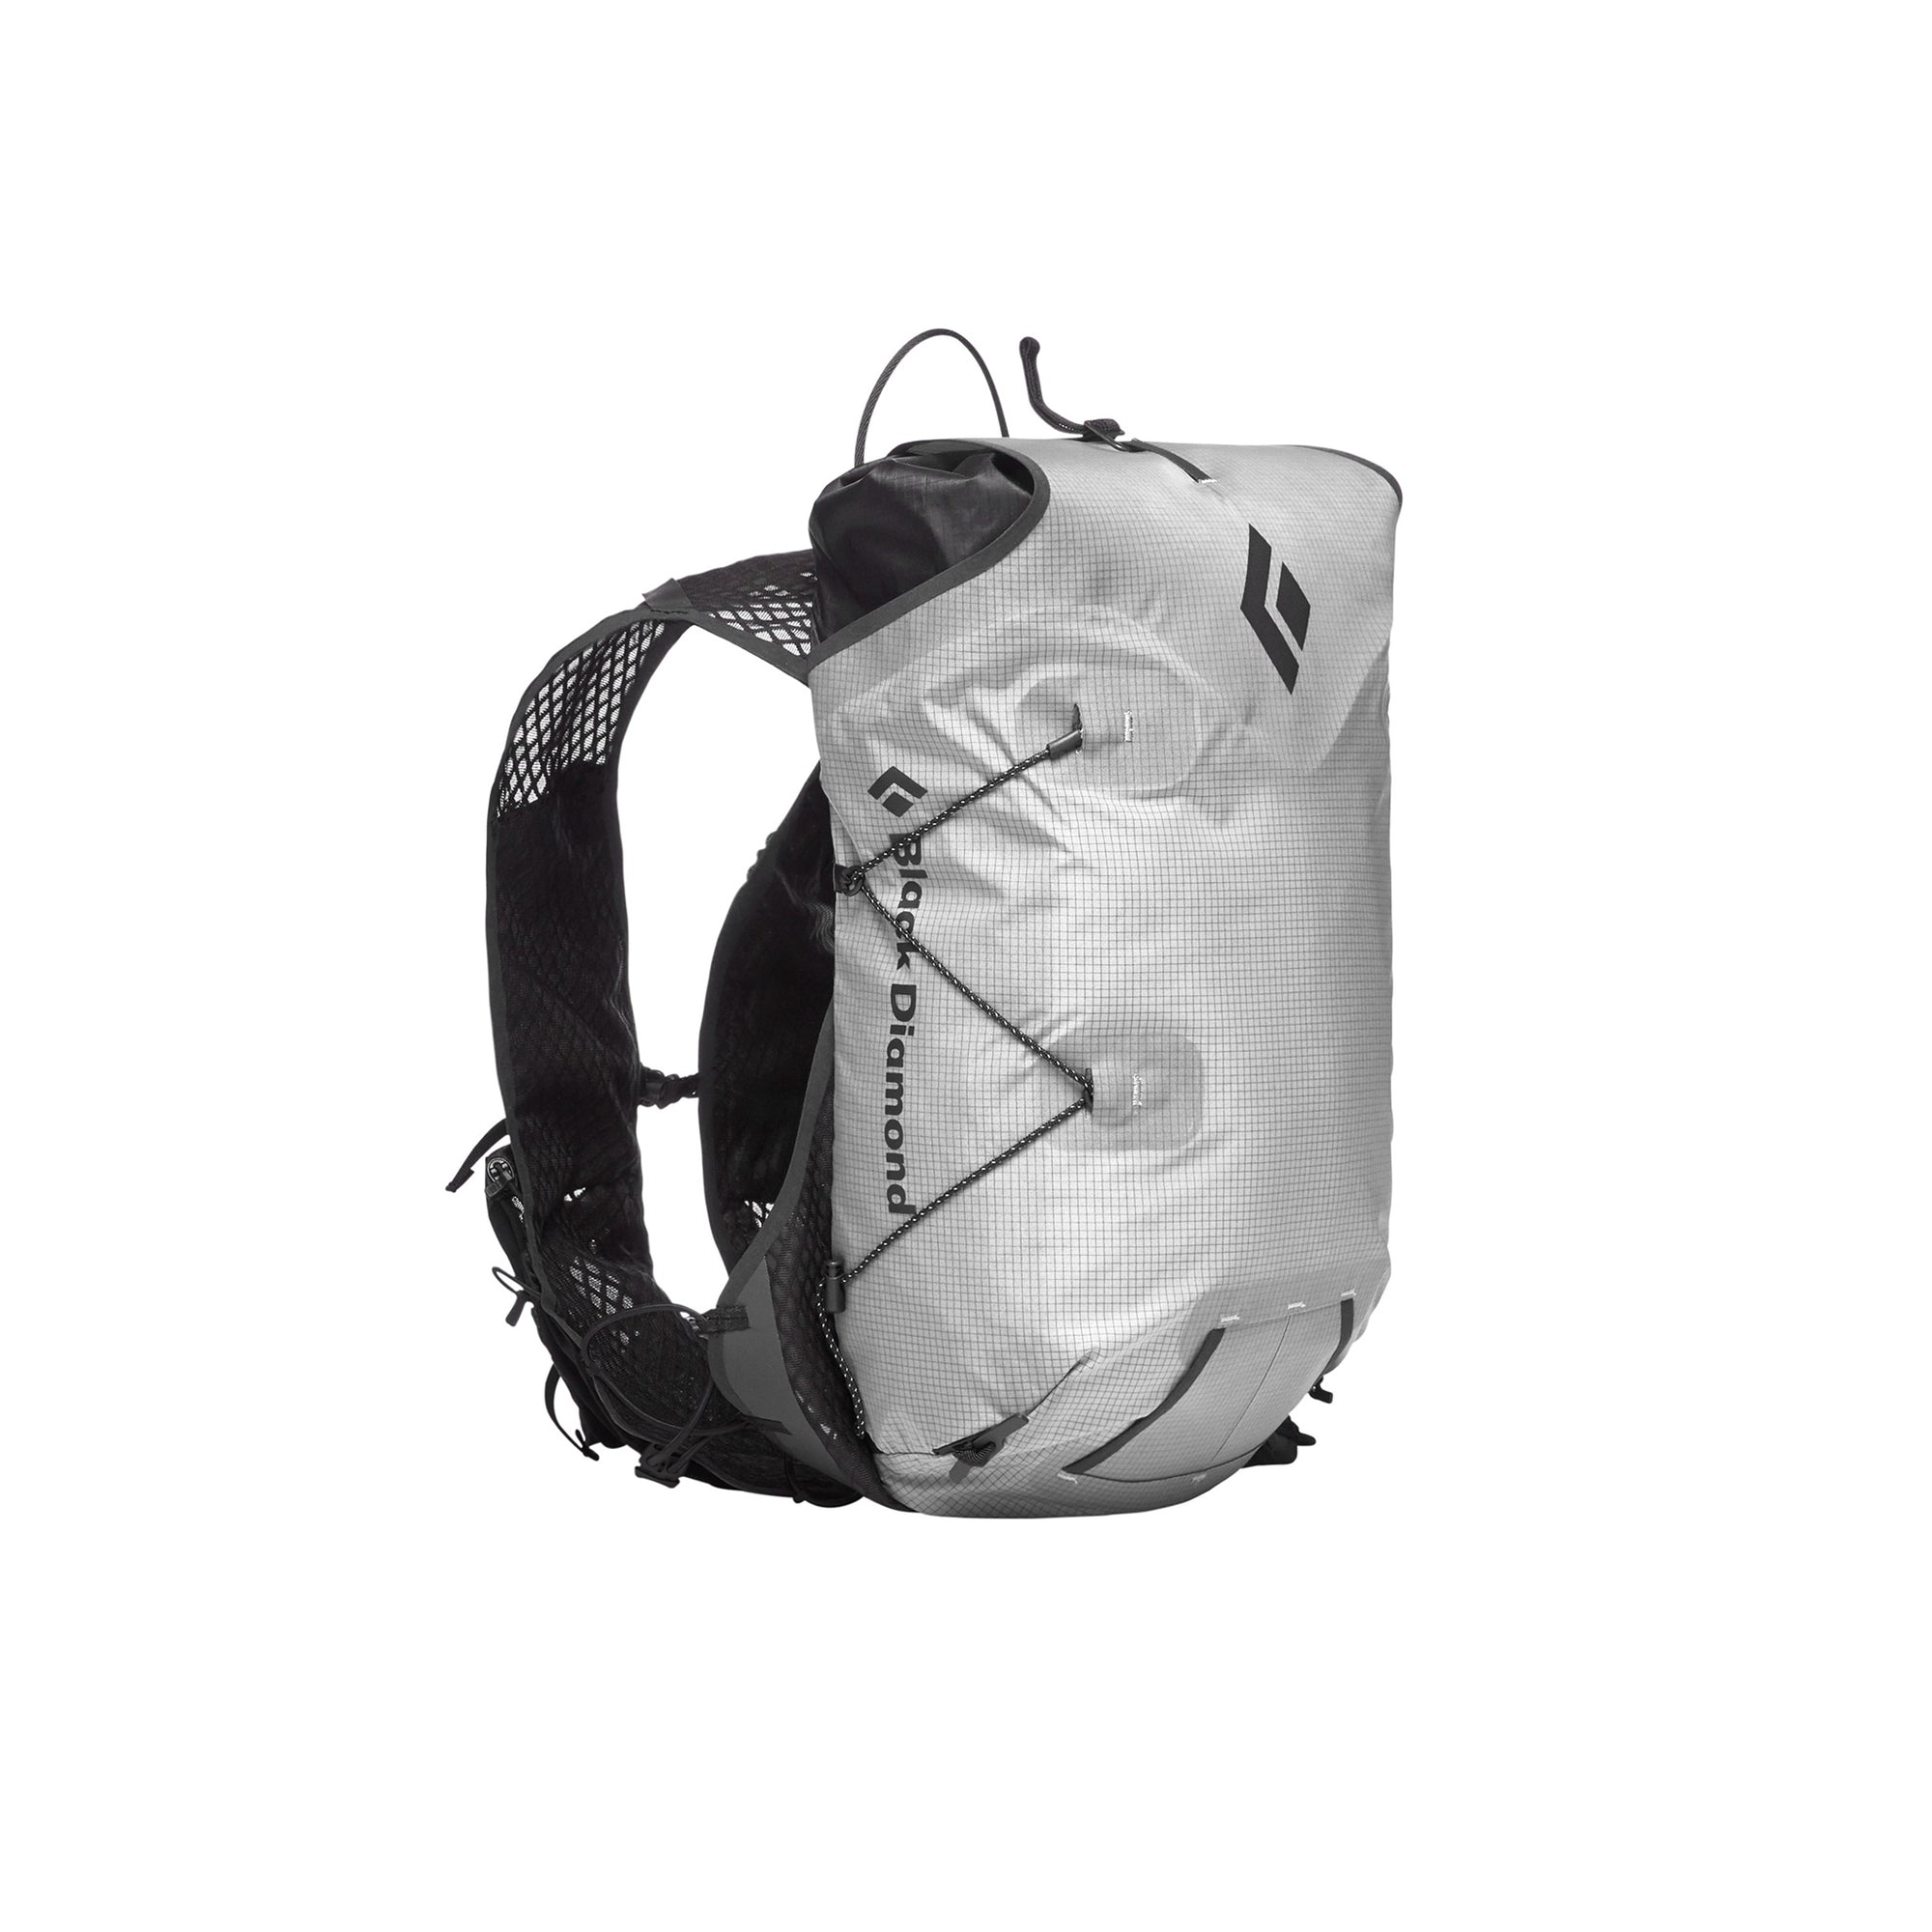 black diamond distance 15 pack in alloy, front view